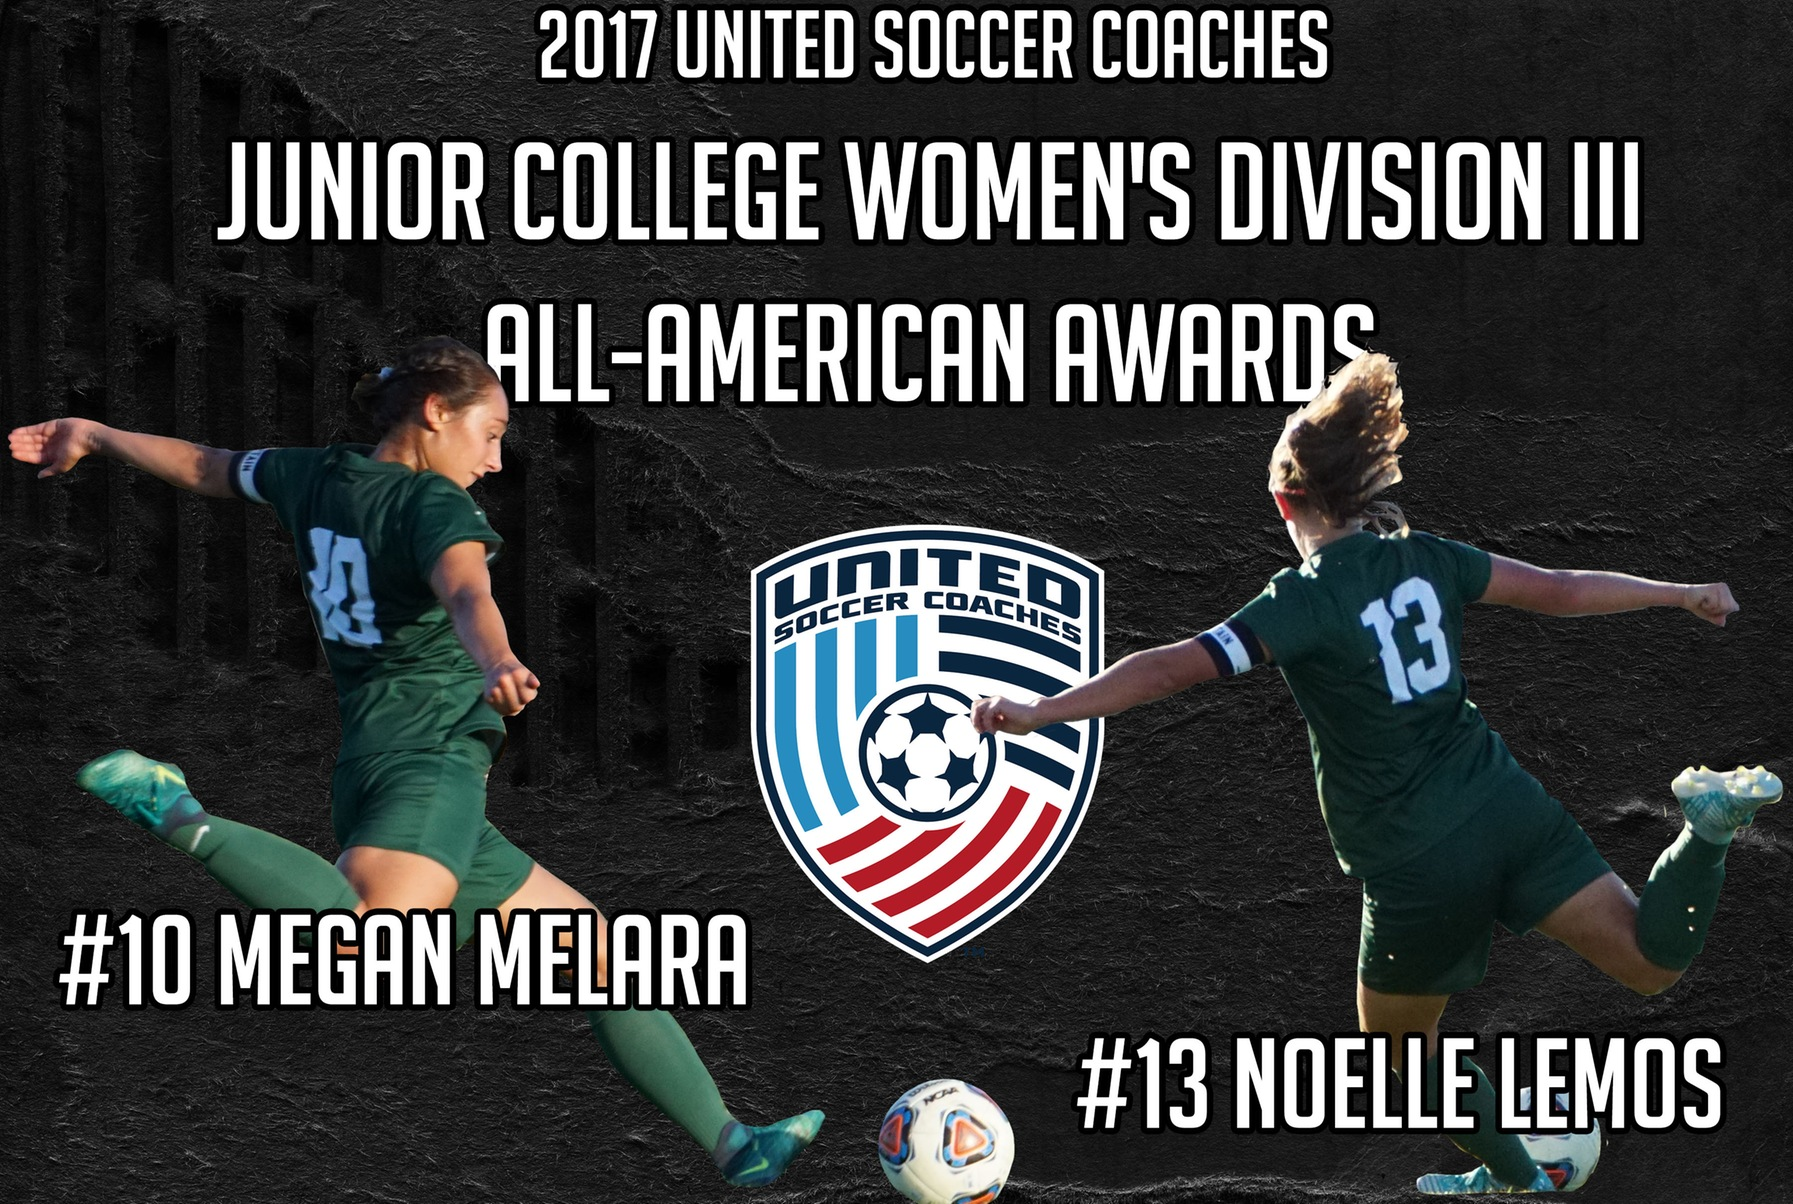 Lemos & Melara Named to United Soccer Coaches Junior College Women's Division III All-American Teams